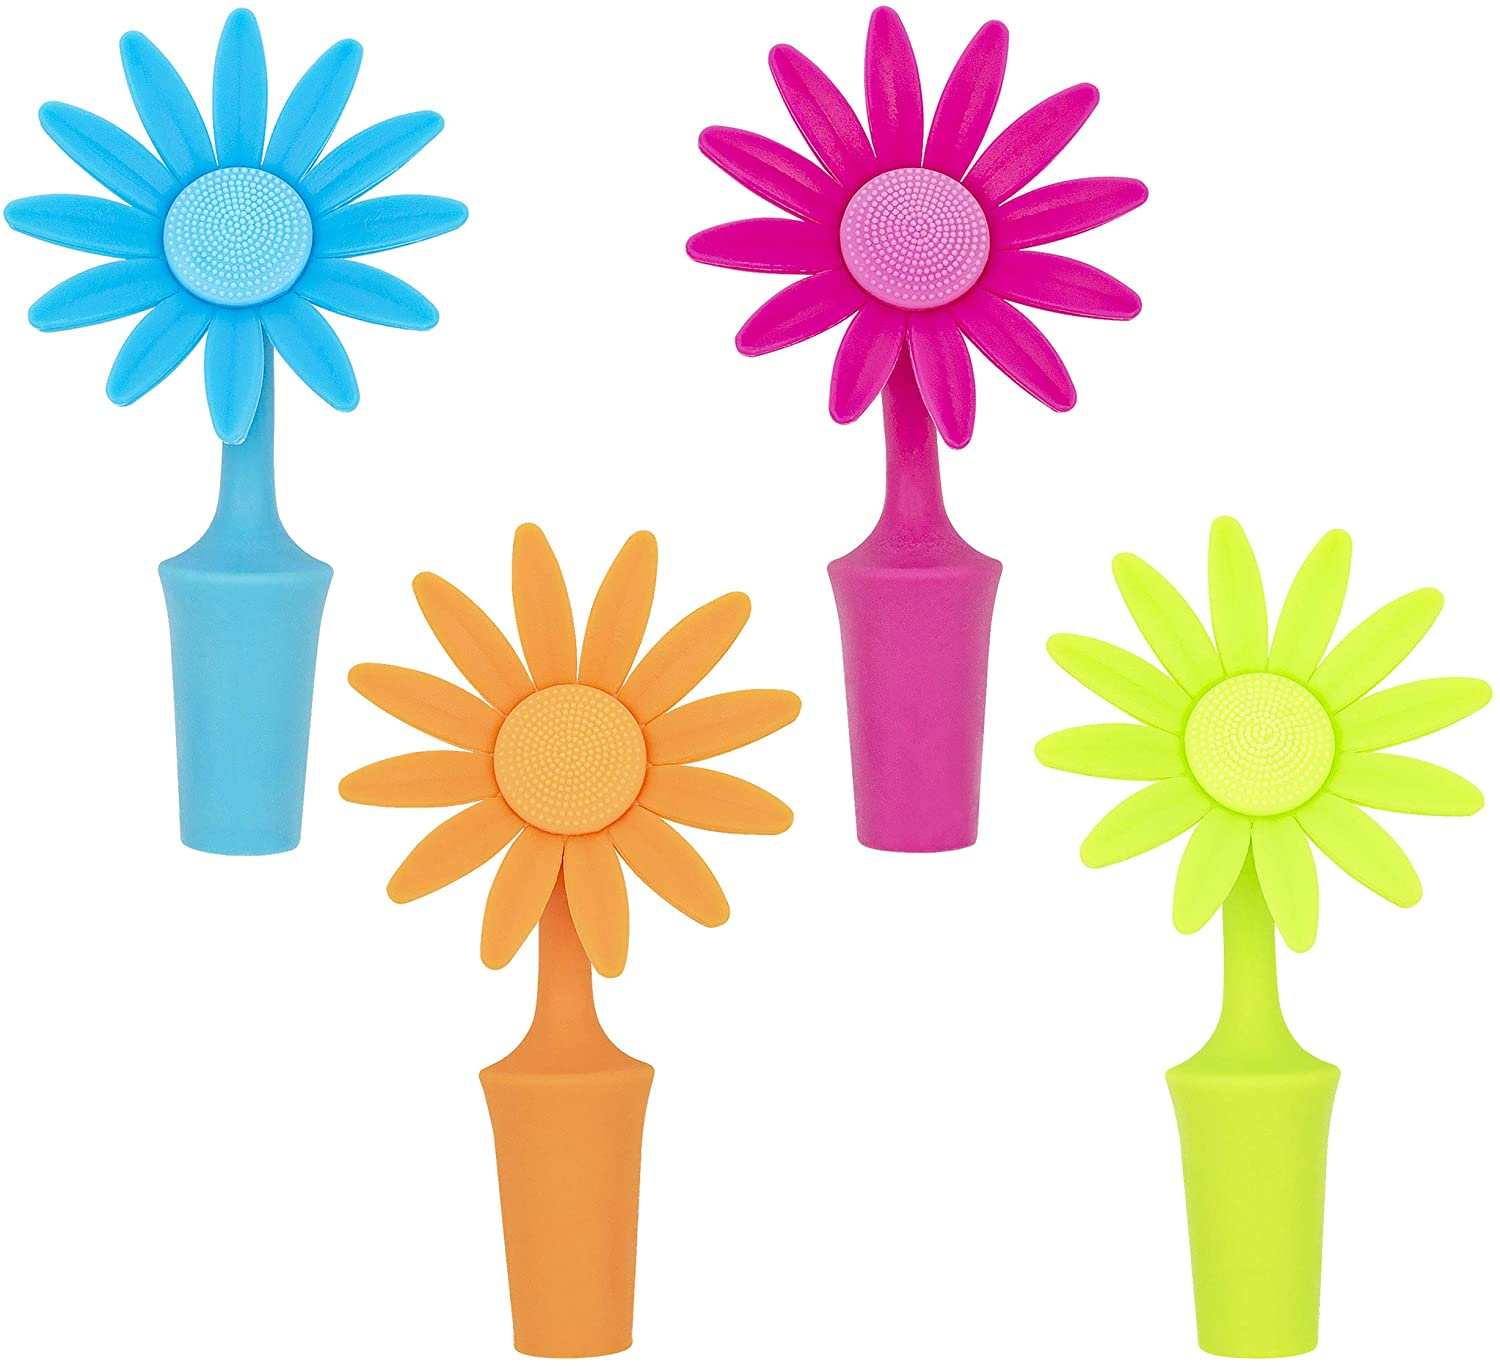 Southern Homewares Flower Bottle Stoppers 4 Pack Silicone Cork - Makes Excellent White Elephant Novelty Gift for Wine Lovers